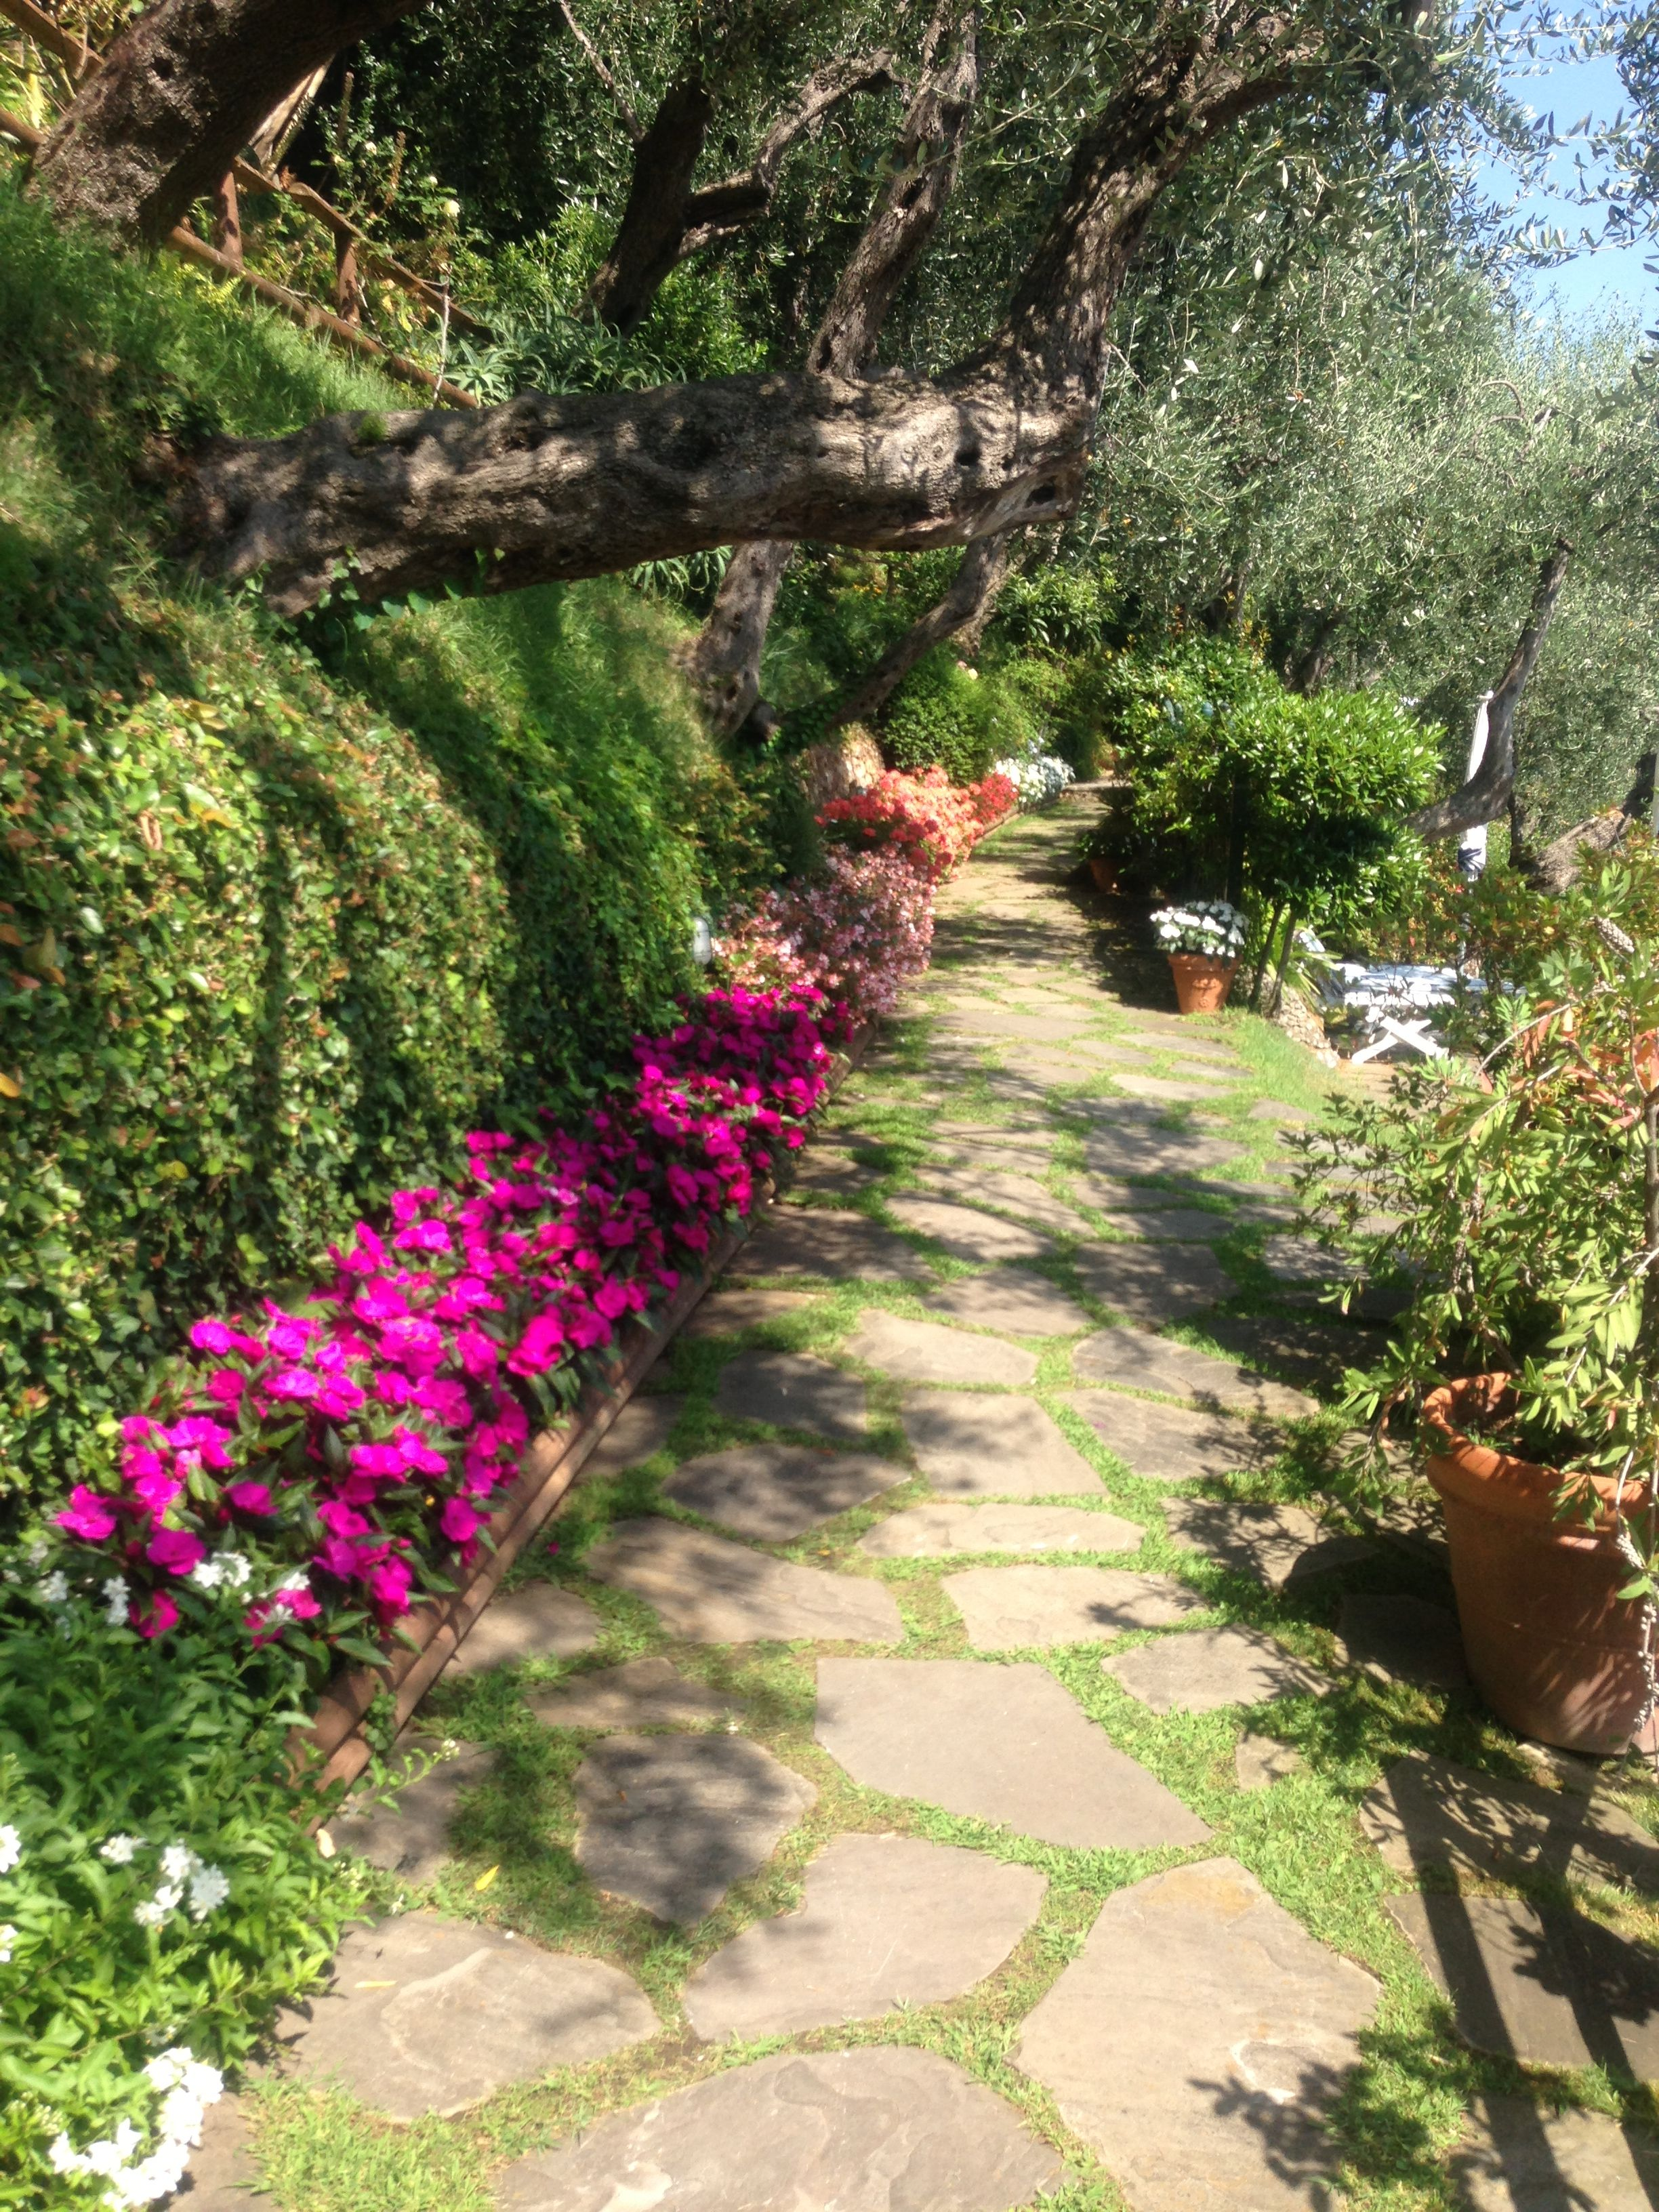 Gardens at the Splendido Hotel in Portofino, Italy